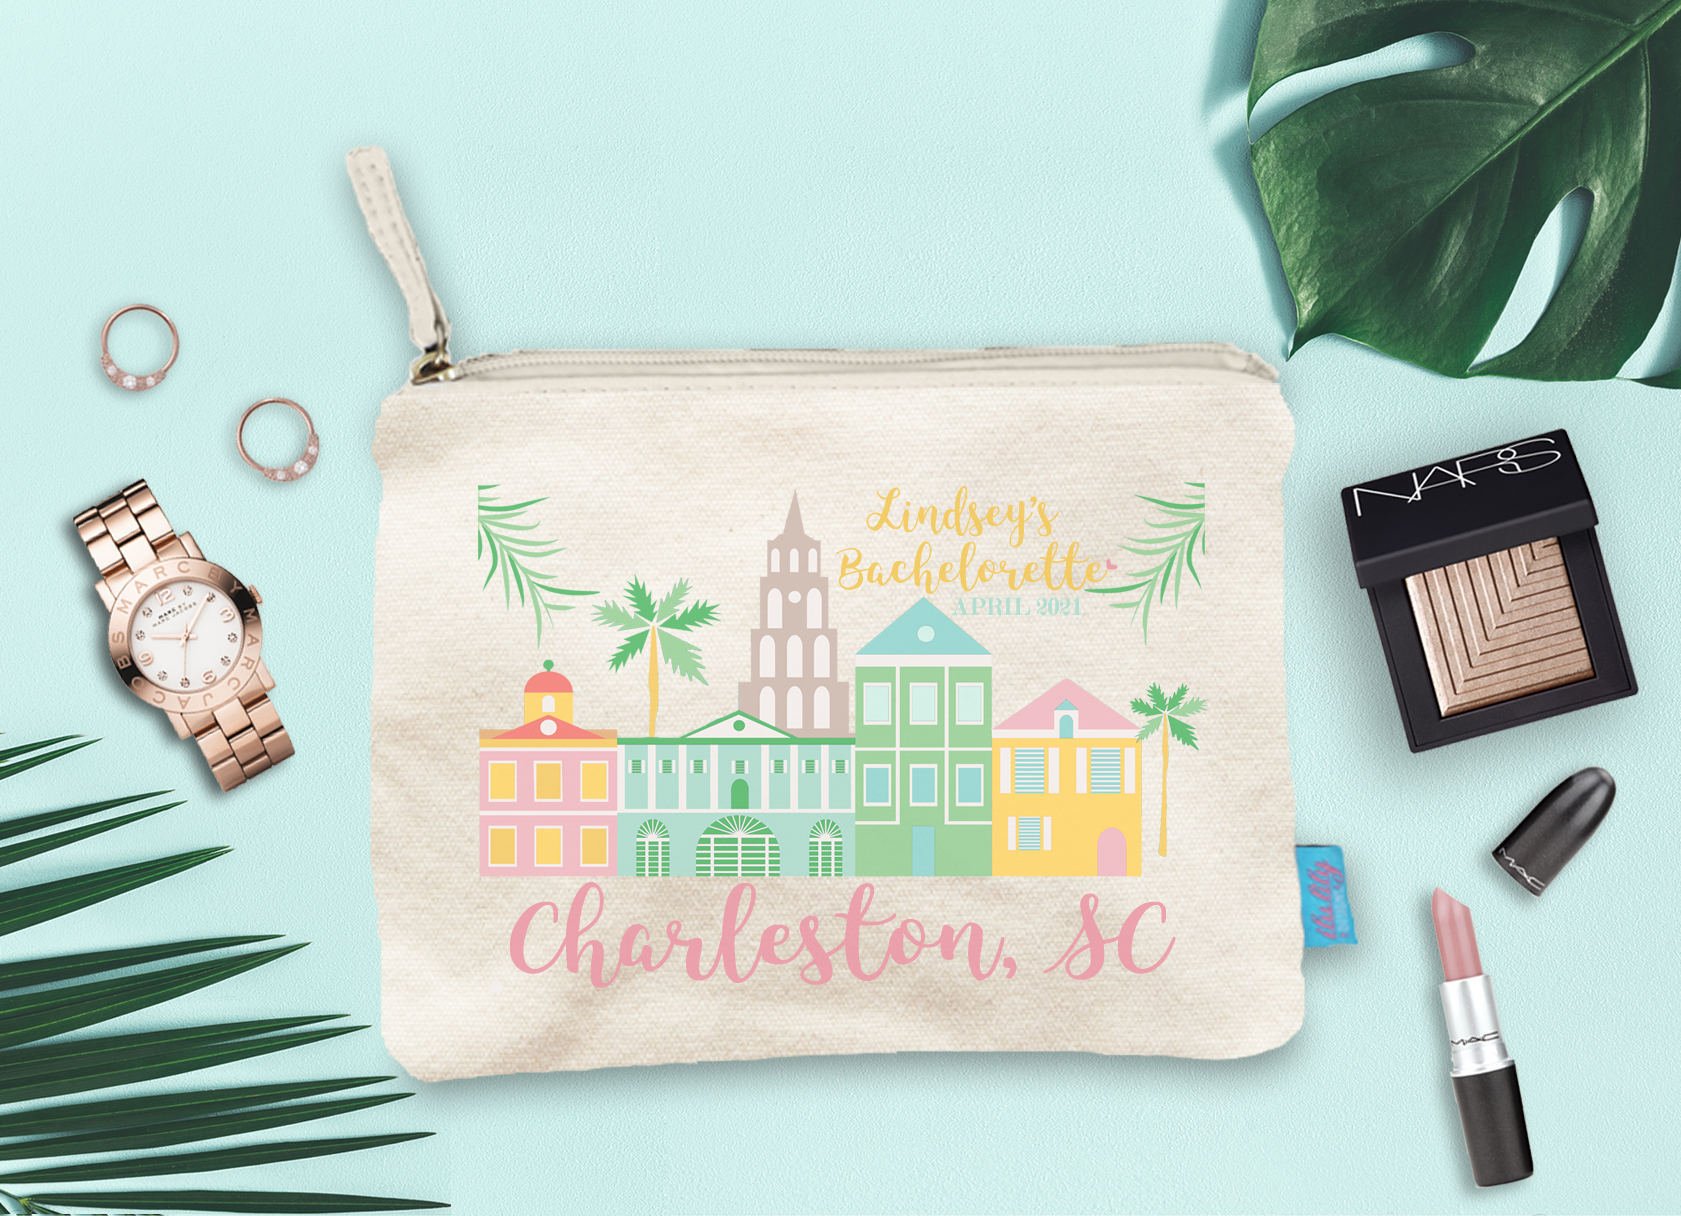 Charleston South Carolina Bachelorette Party Makeup Cosmetic Bag